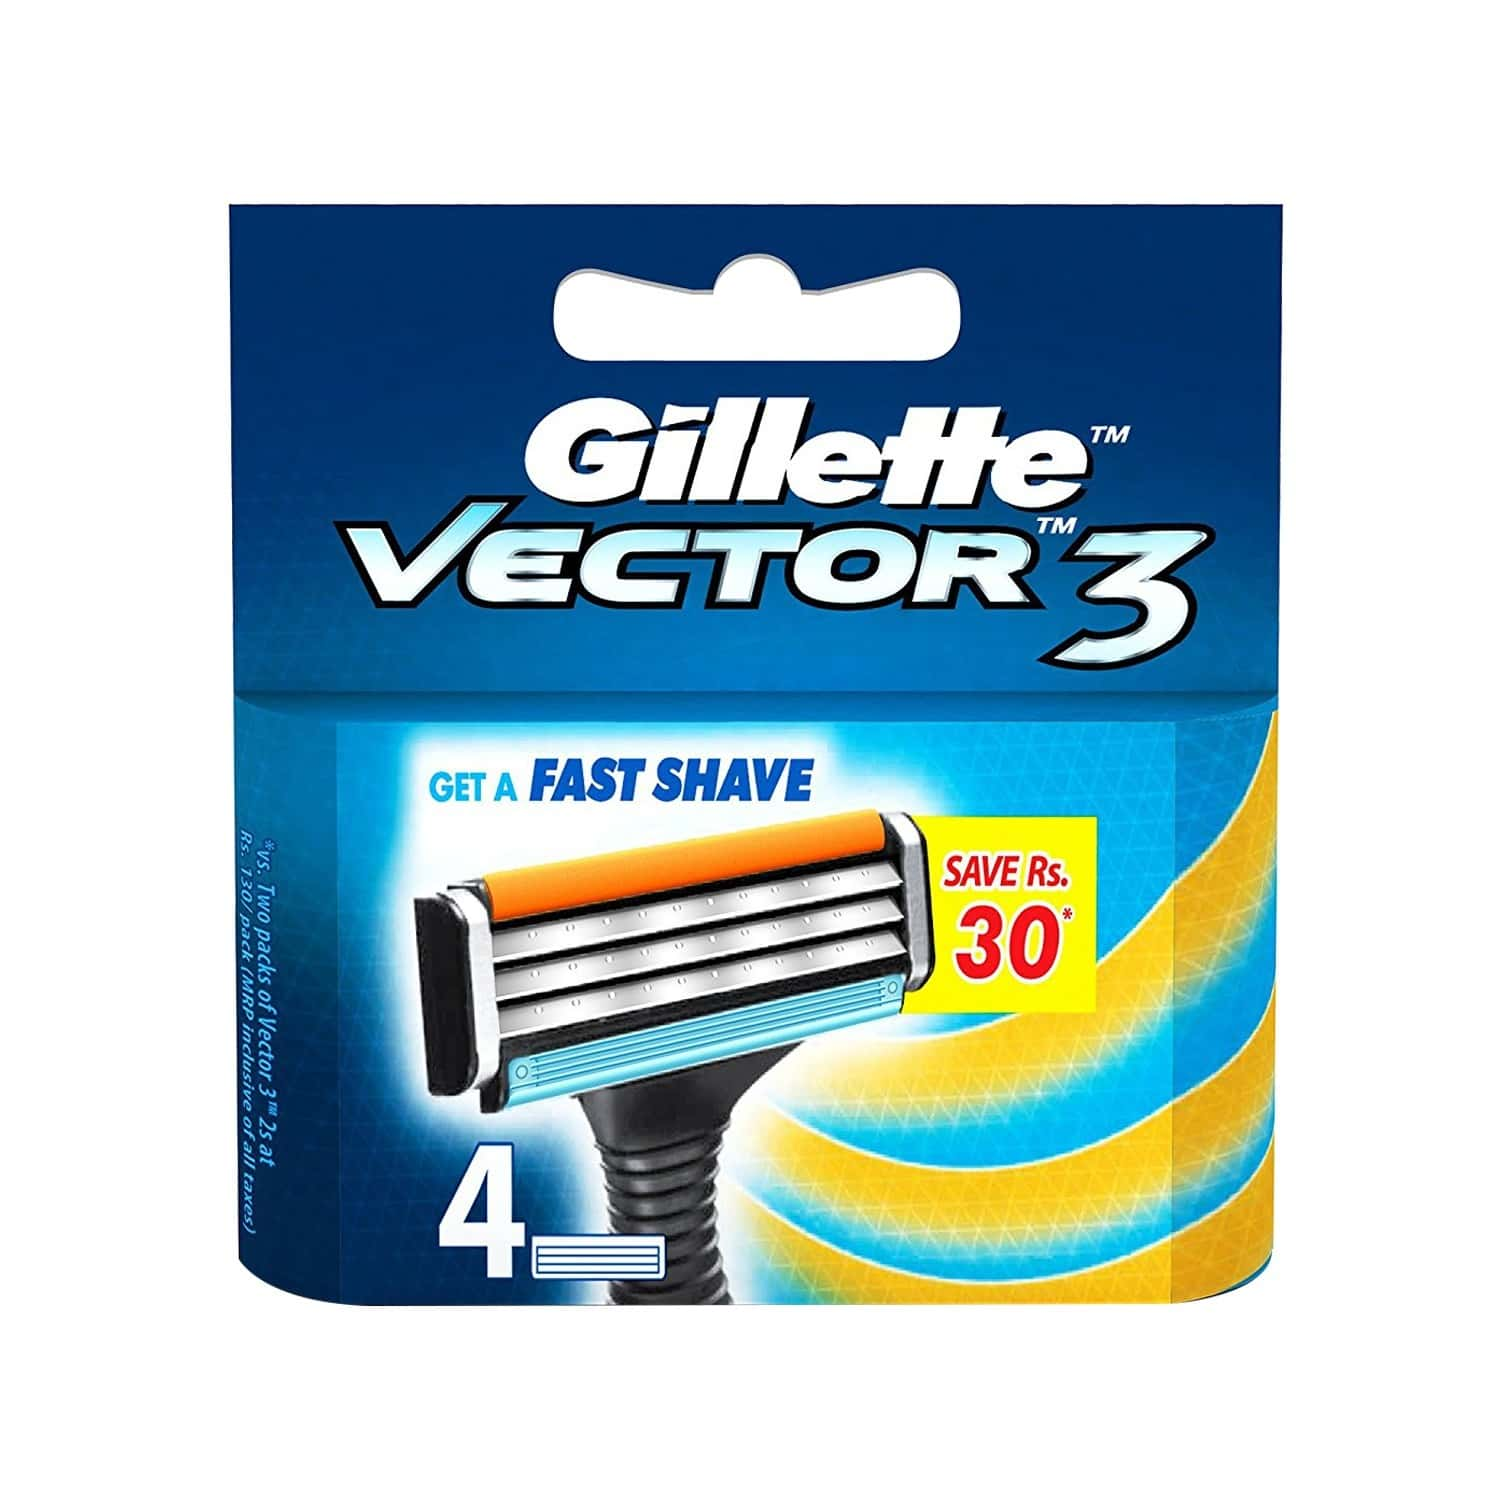 Gillette Vector 3 Manual Shaving Razor Blades ( 4 Catridges)